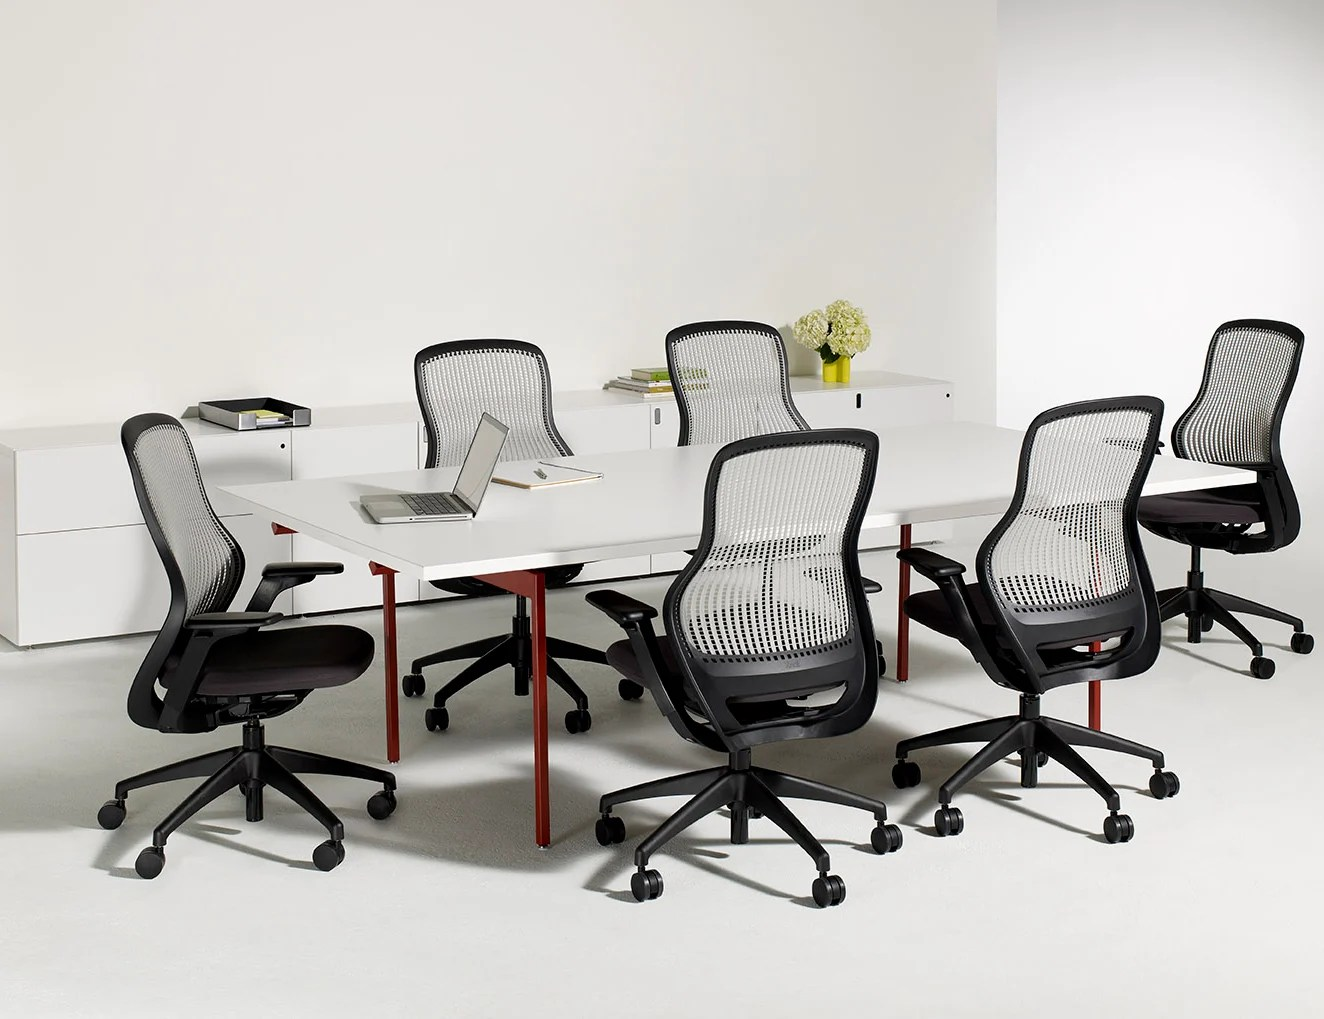 Knoll Regeneration Chair Regeneration By Knoll Ergonomic Chair Knoll